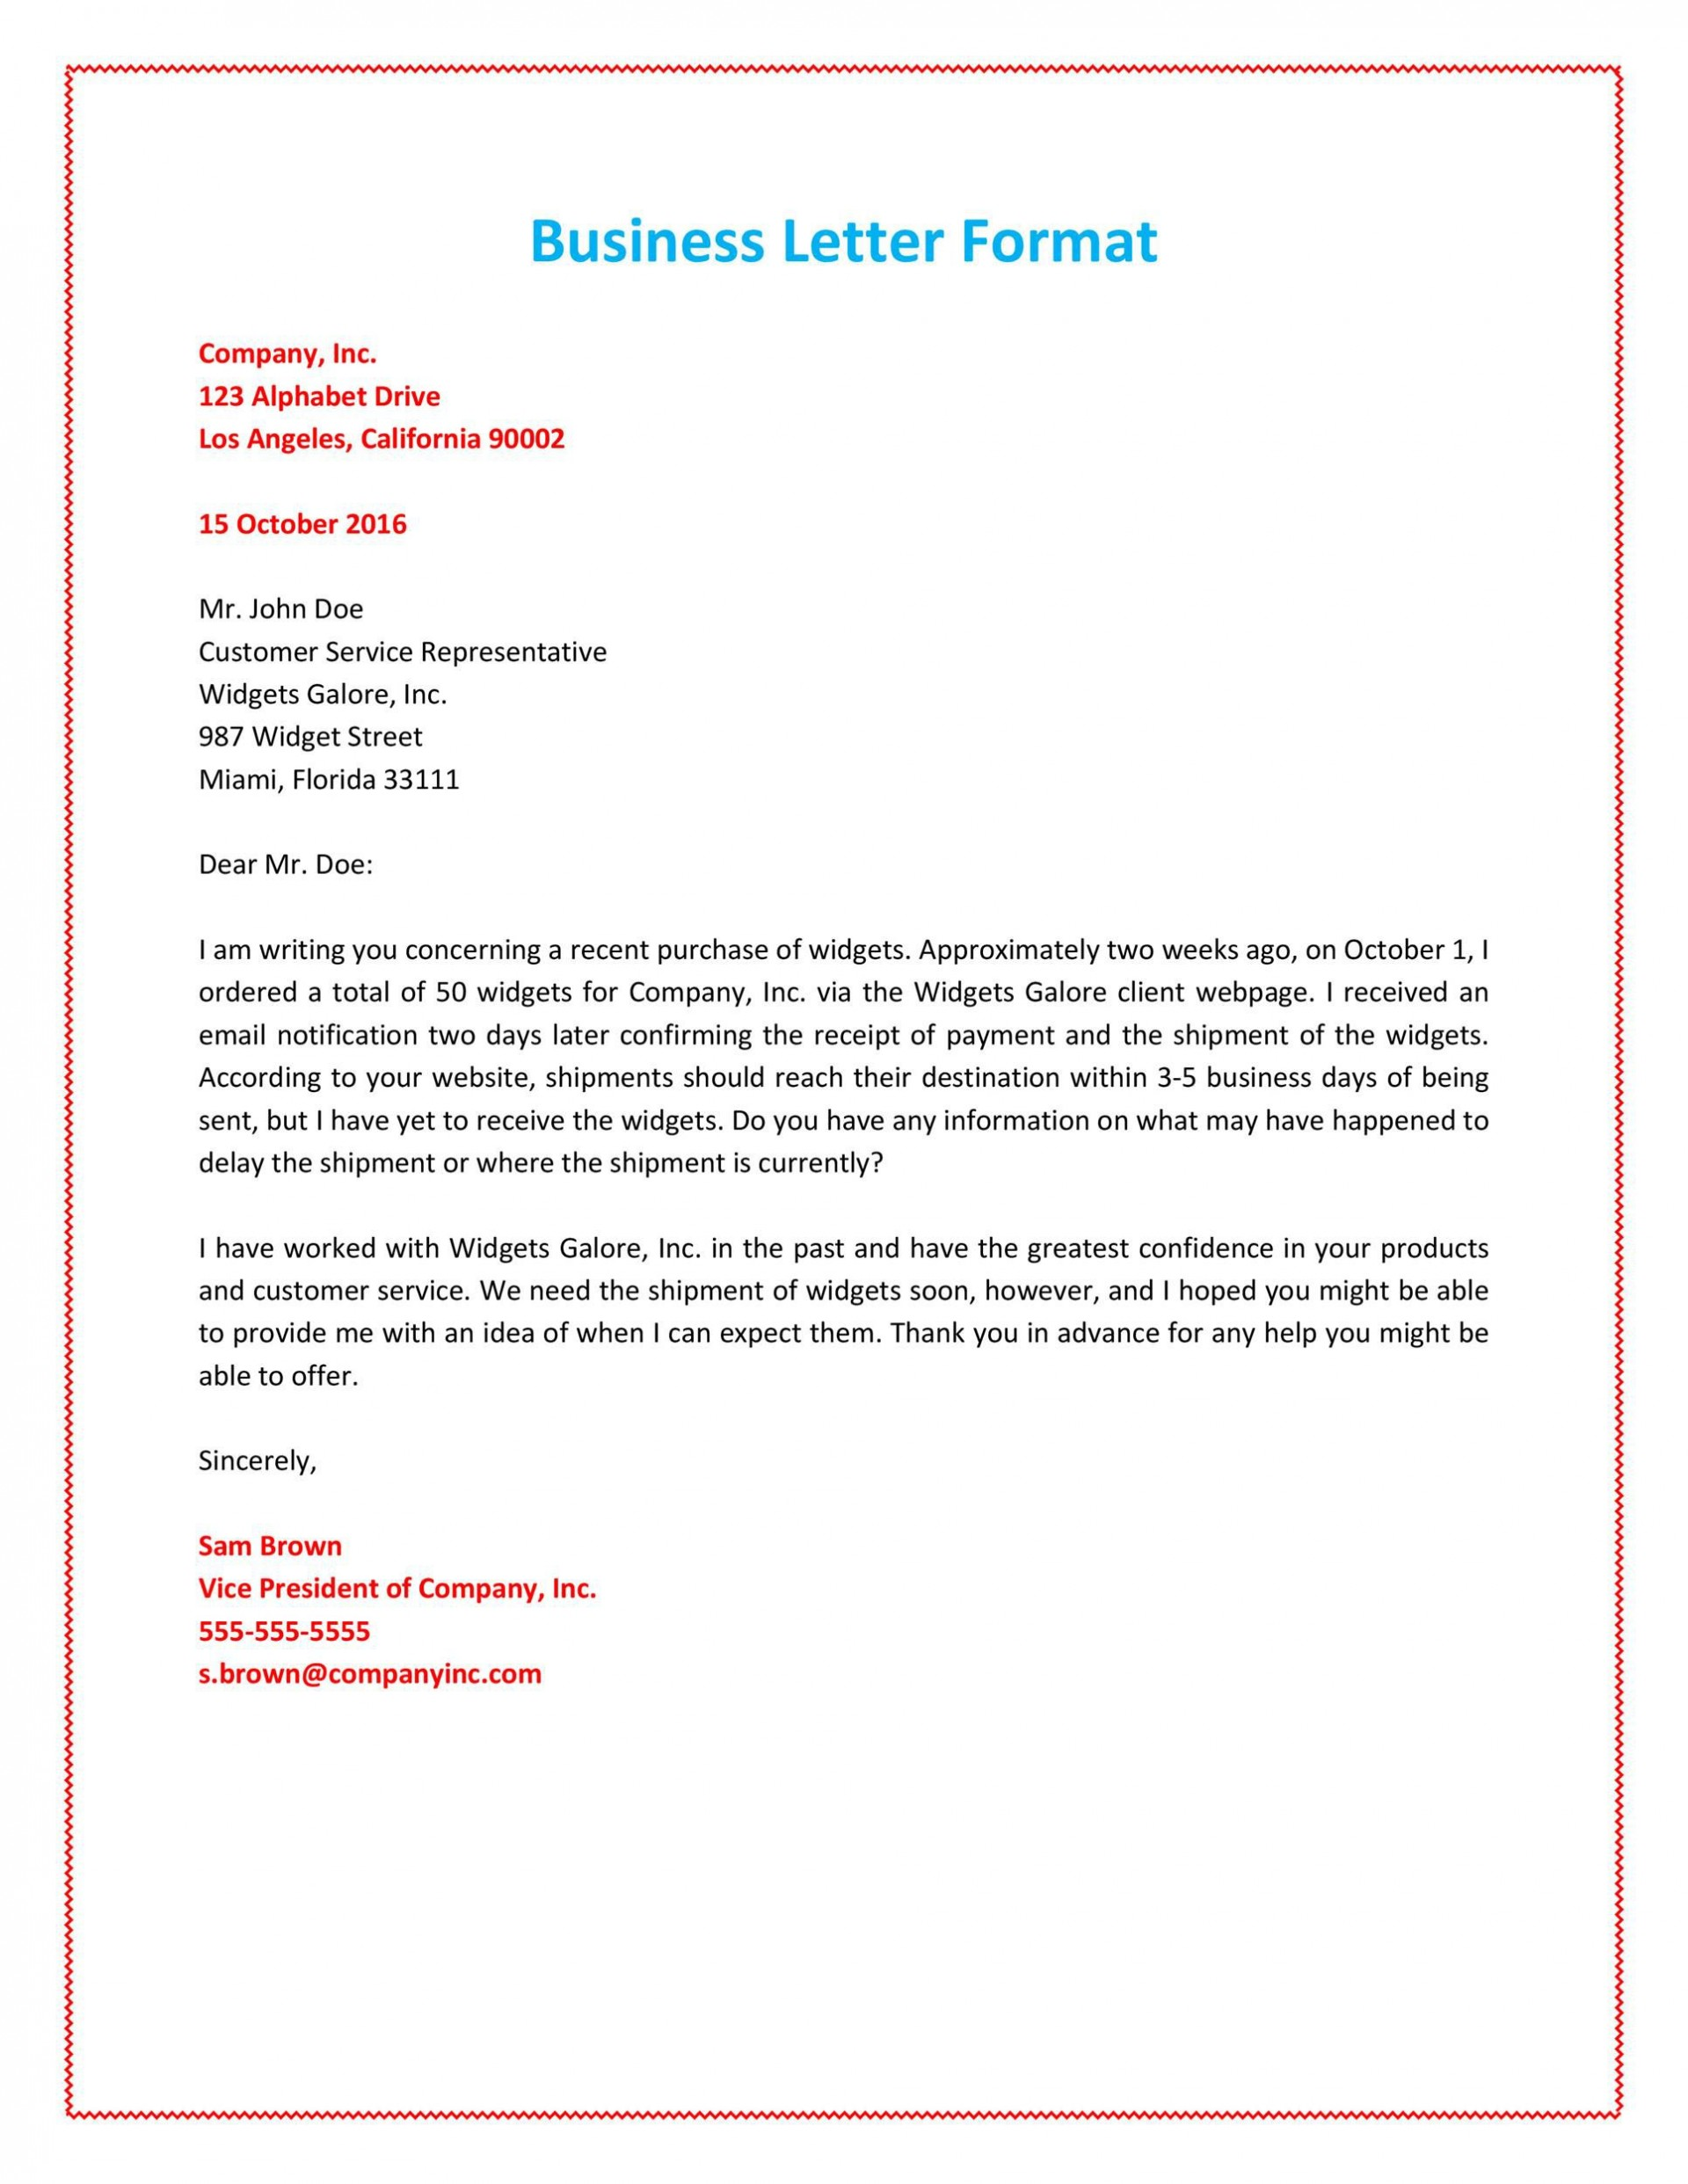 011 Marvelou Busines Letter Template Word Sample  Cover Free1920